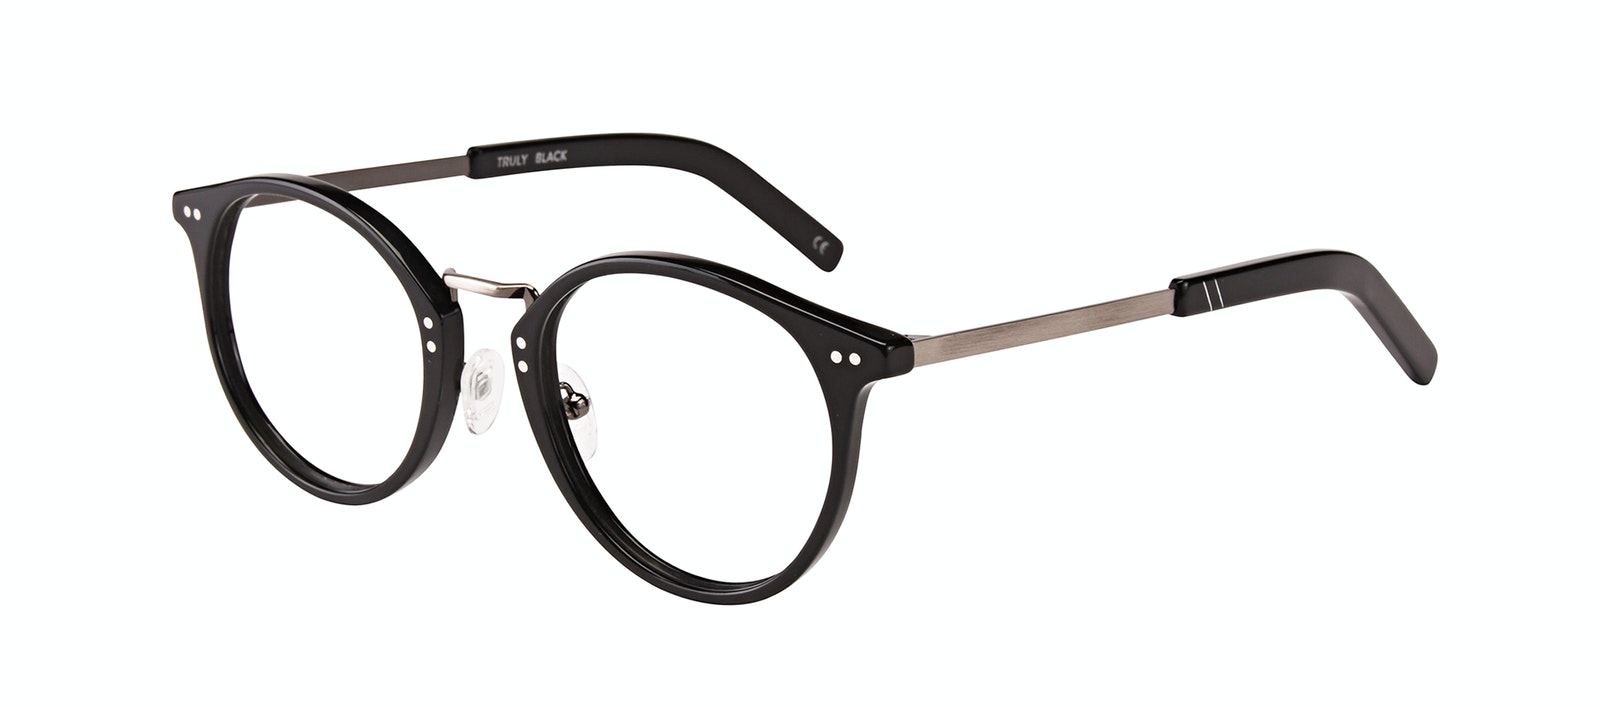 Affordable Fashion Glasses Round Eyeglasses Men Truly Black Tilt